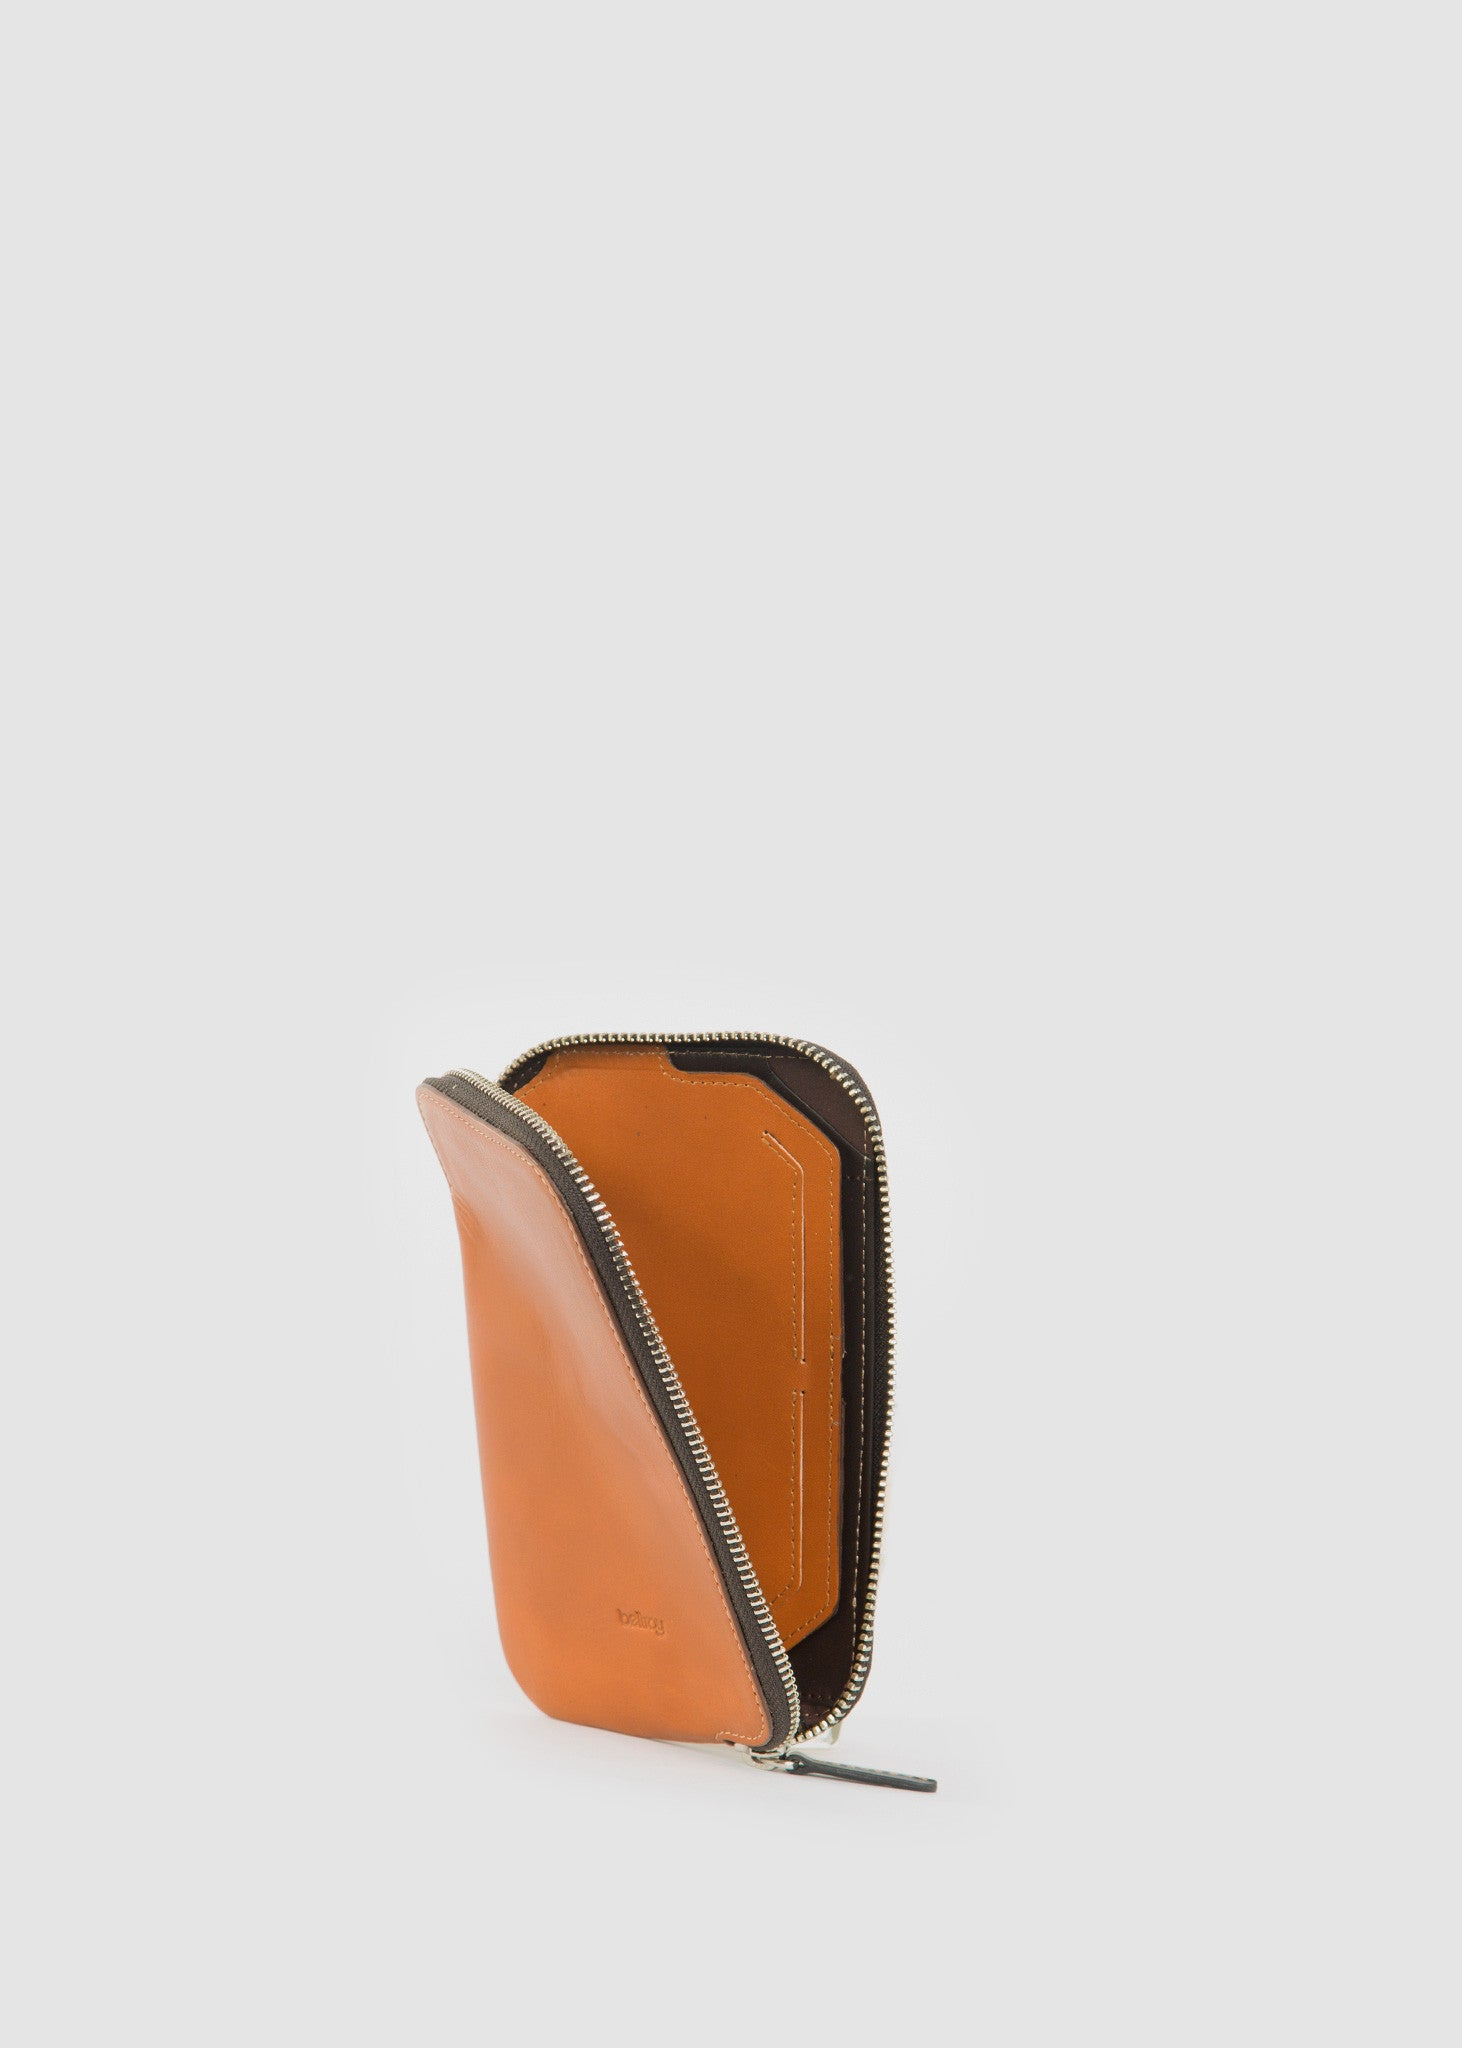 Phone Pocket Caramel